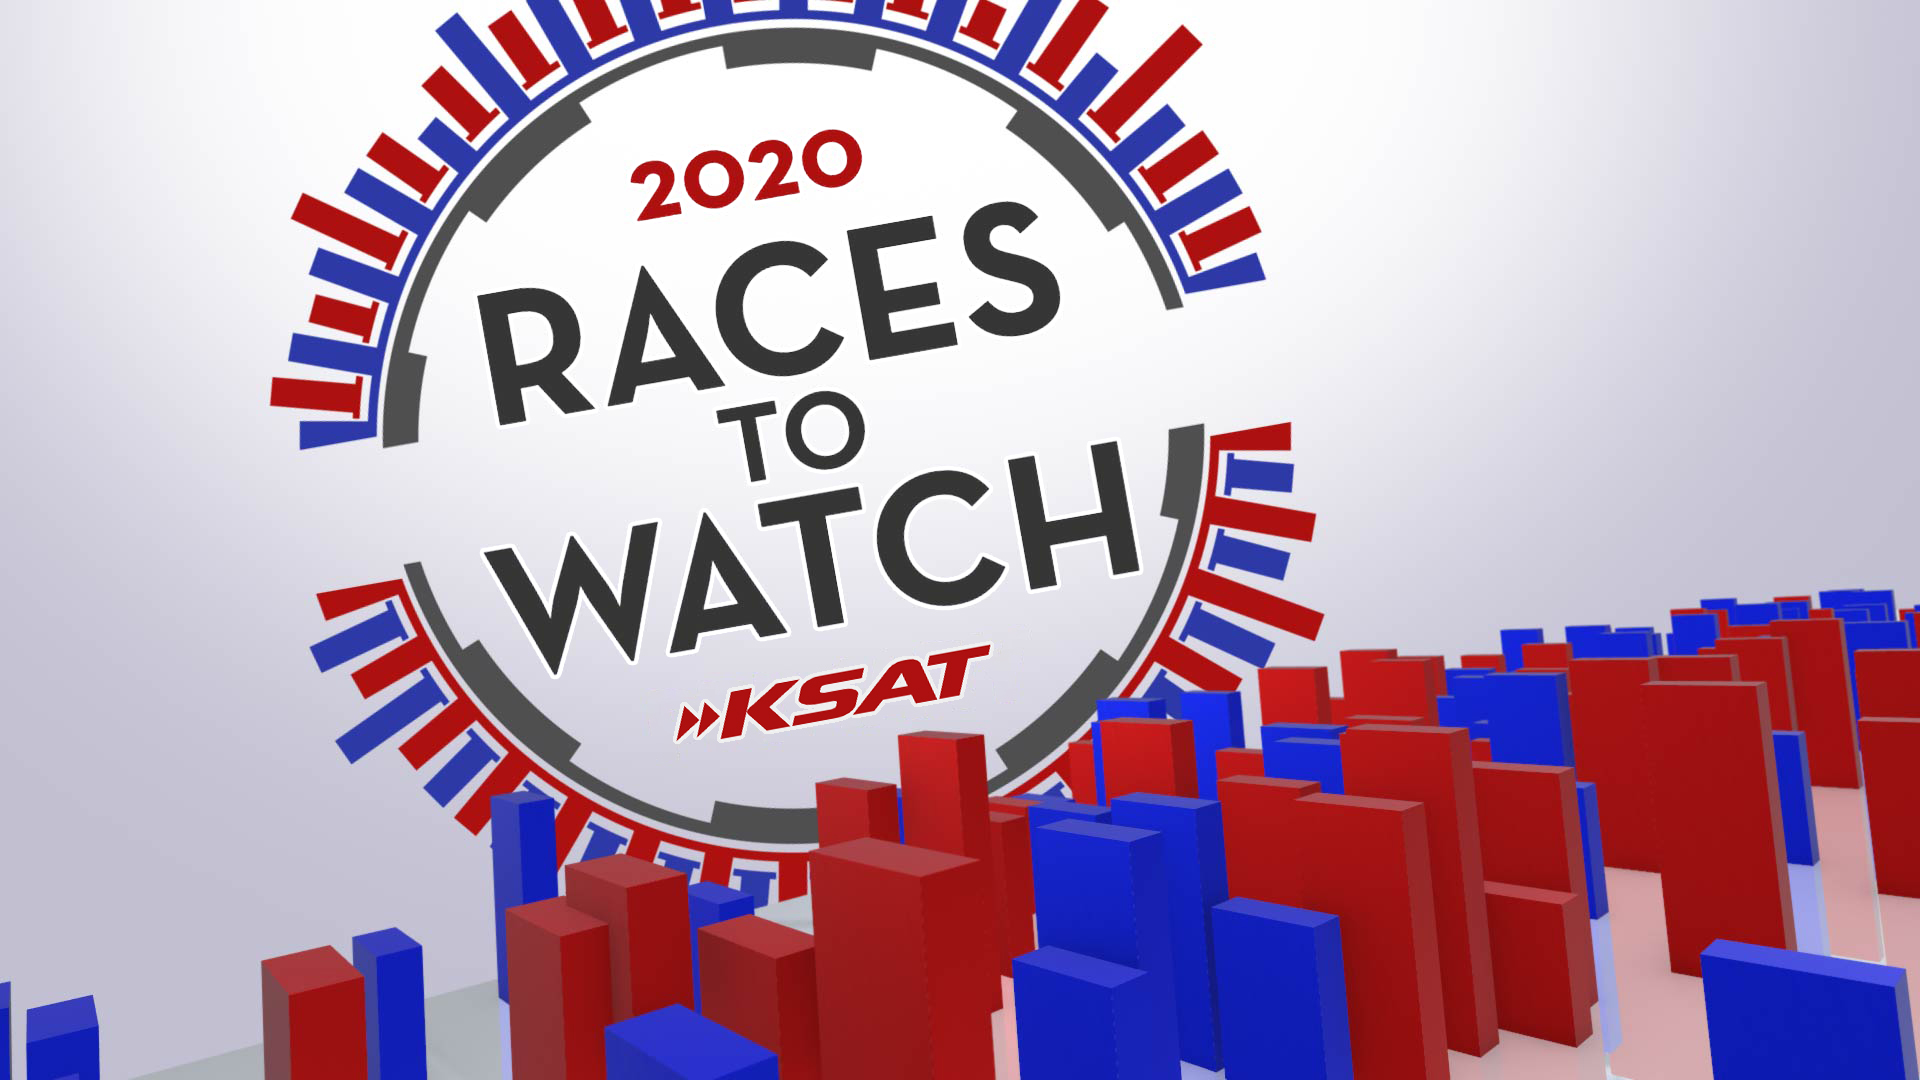 Key races to watch in 2020 election in Bexar County